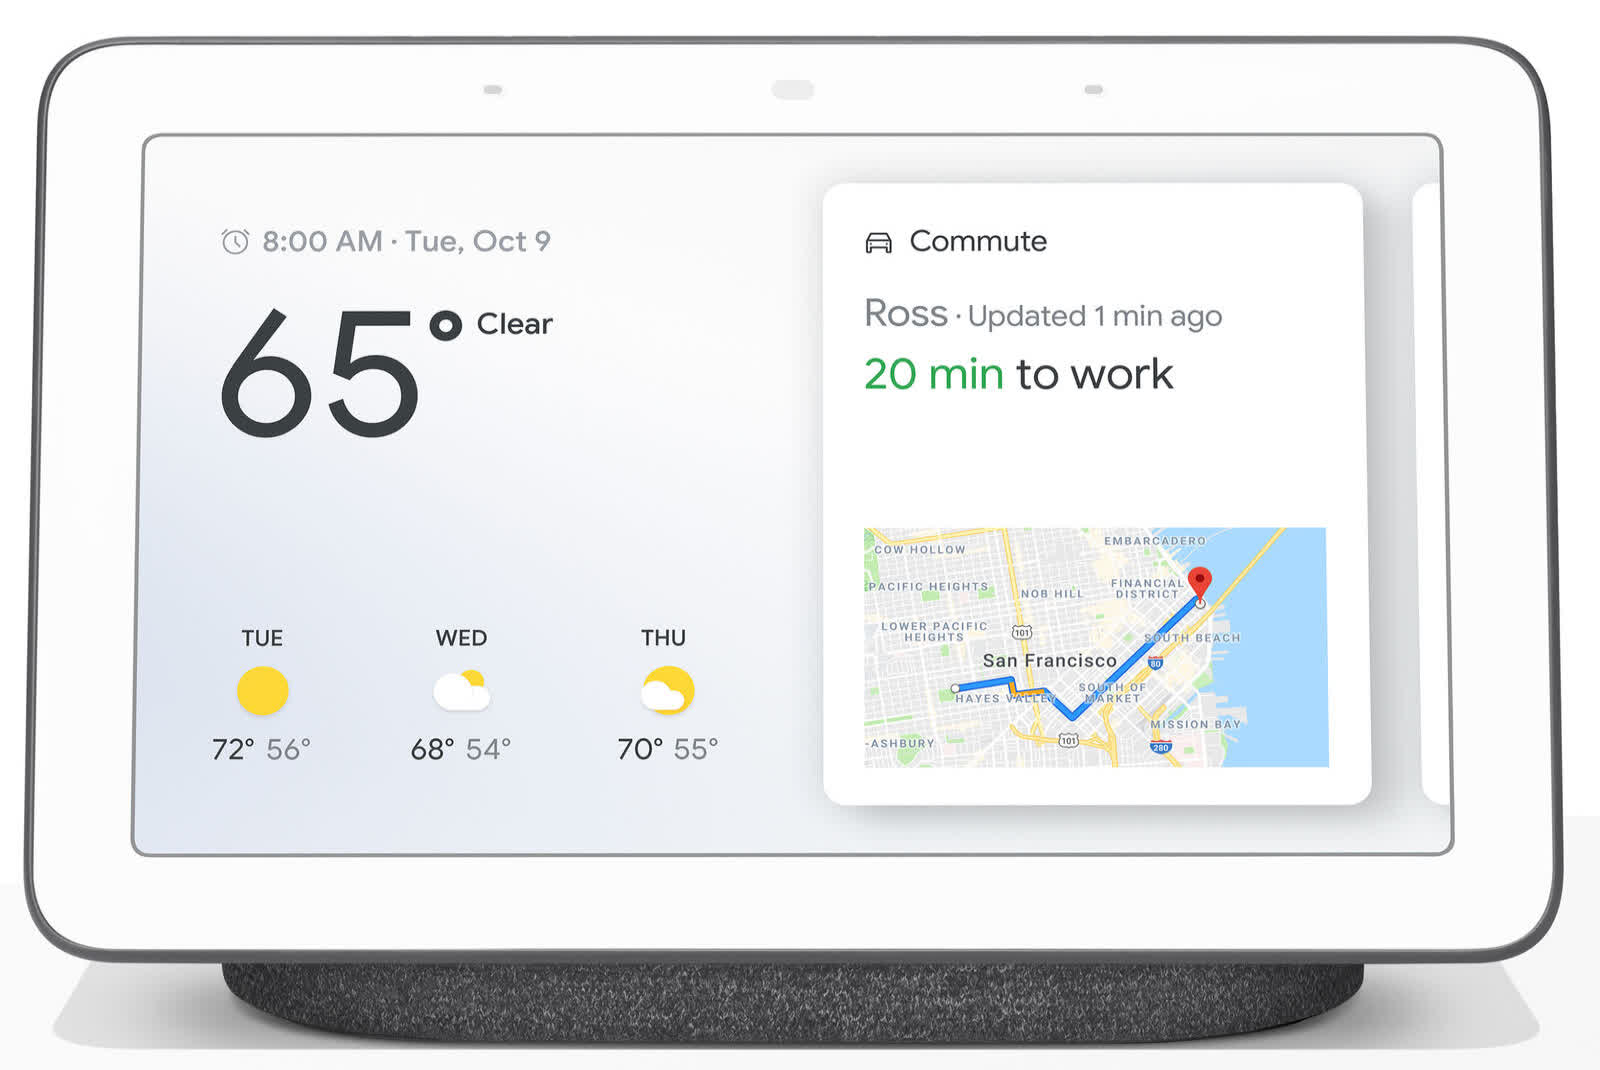 Google Fuchsia OS is now available as an update for first-gen Nest Hub devices